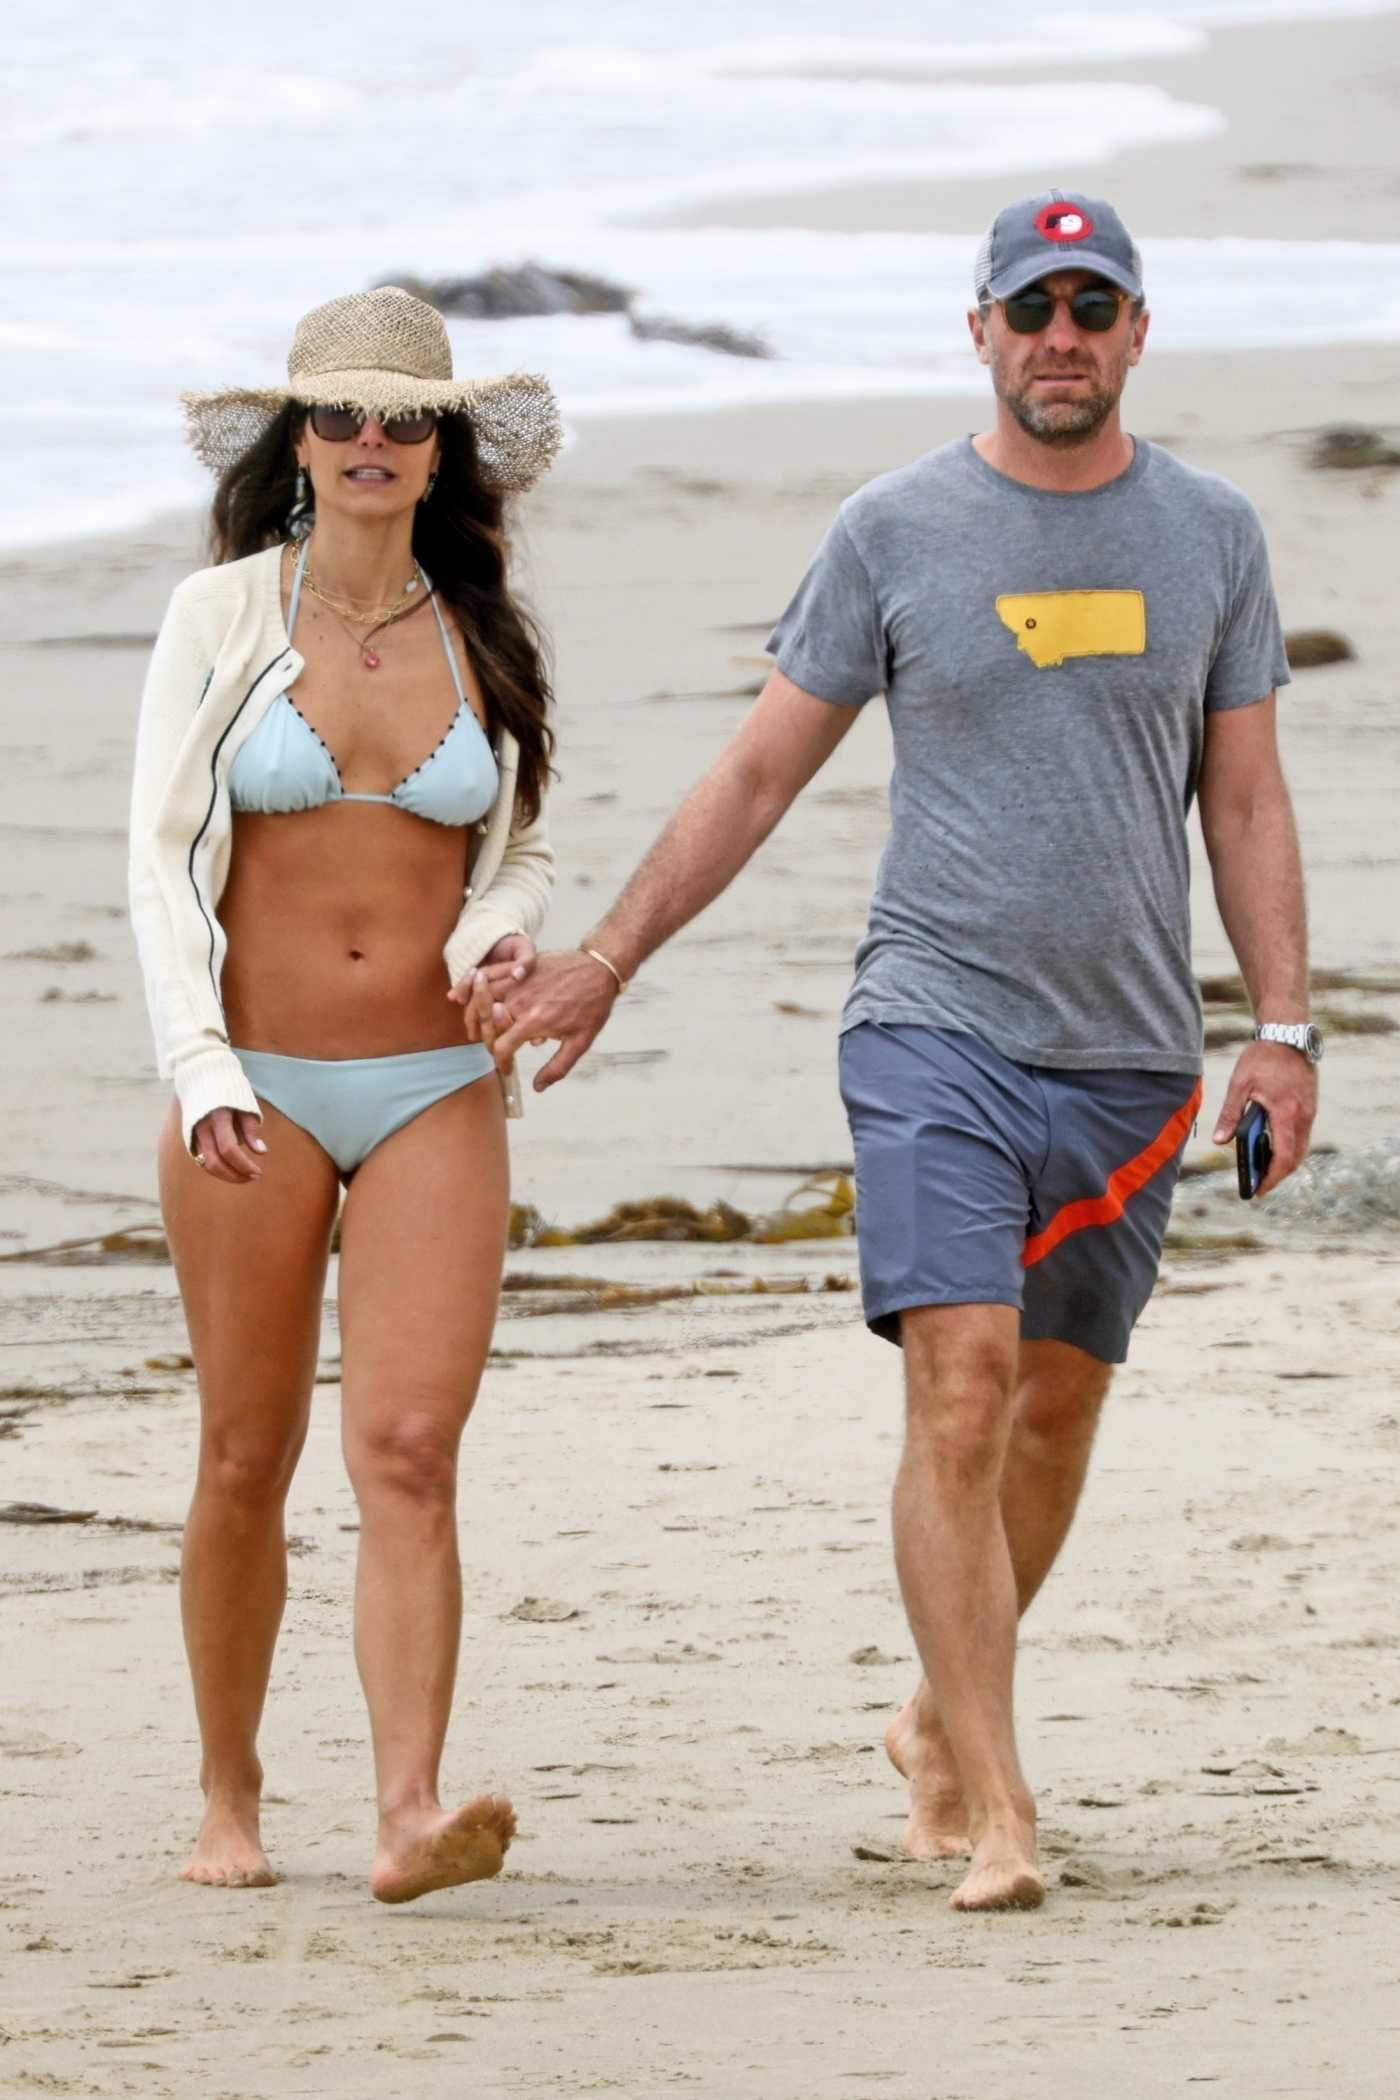 Jordana Brewster in a Blue Bikini Was Seen Out with Mason Morfit on the Beach in Santa Monica 05/02/2021